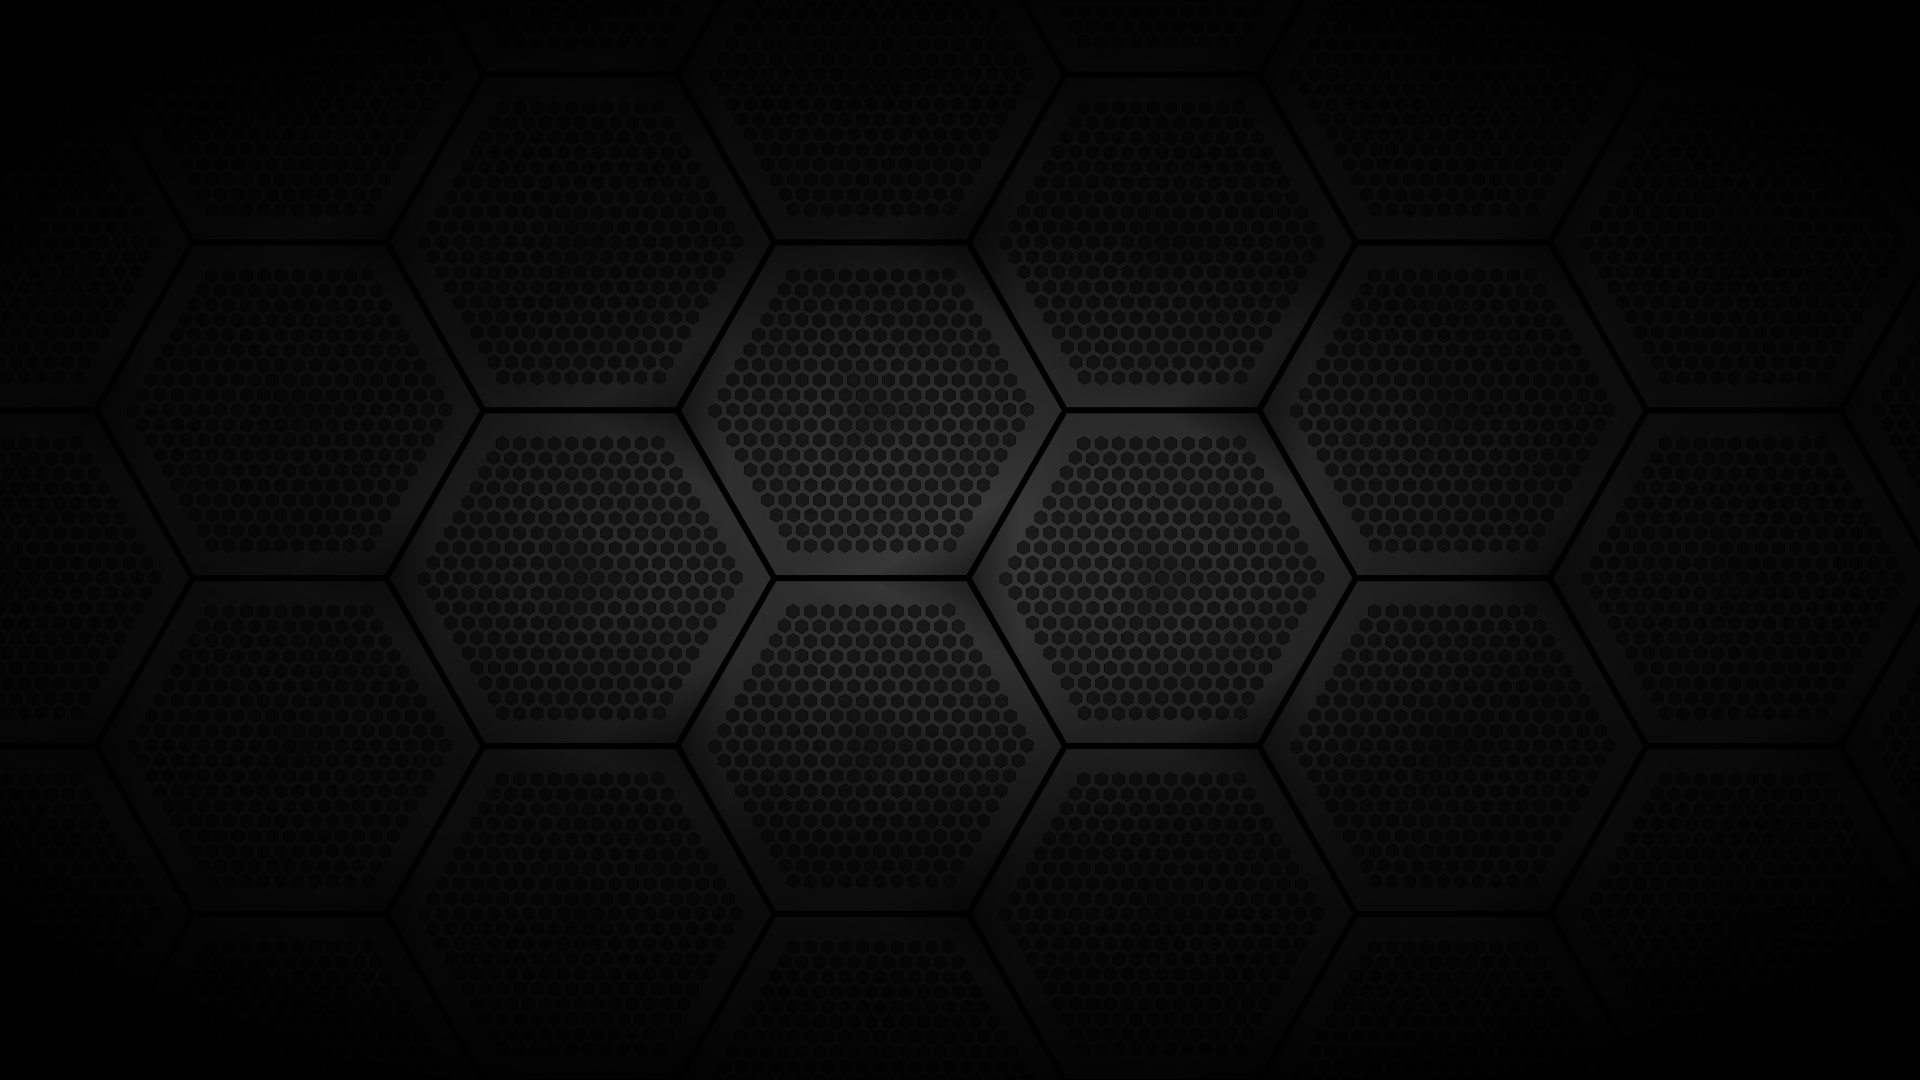 Black I Rectangle by CarlosTown on DeviantArt